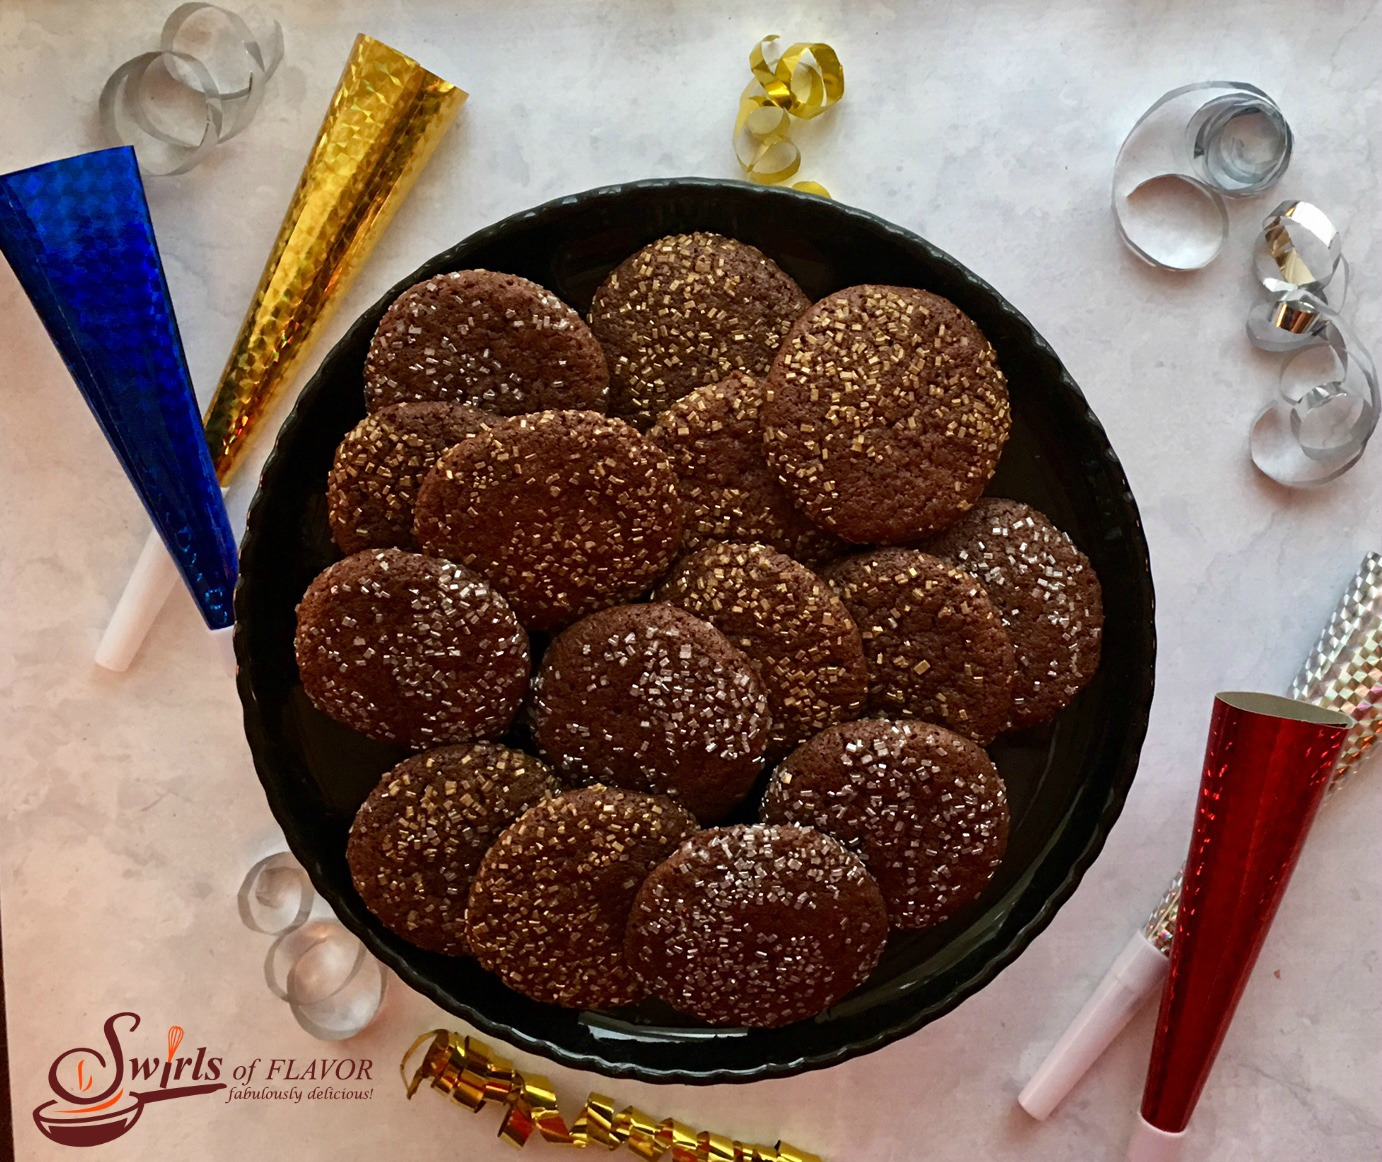 A simple chocolate cookie surrounded with twinkling sugars is easy to make and so impressive to serve as a holiday dessert. And we all know that glitter makes everything better!